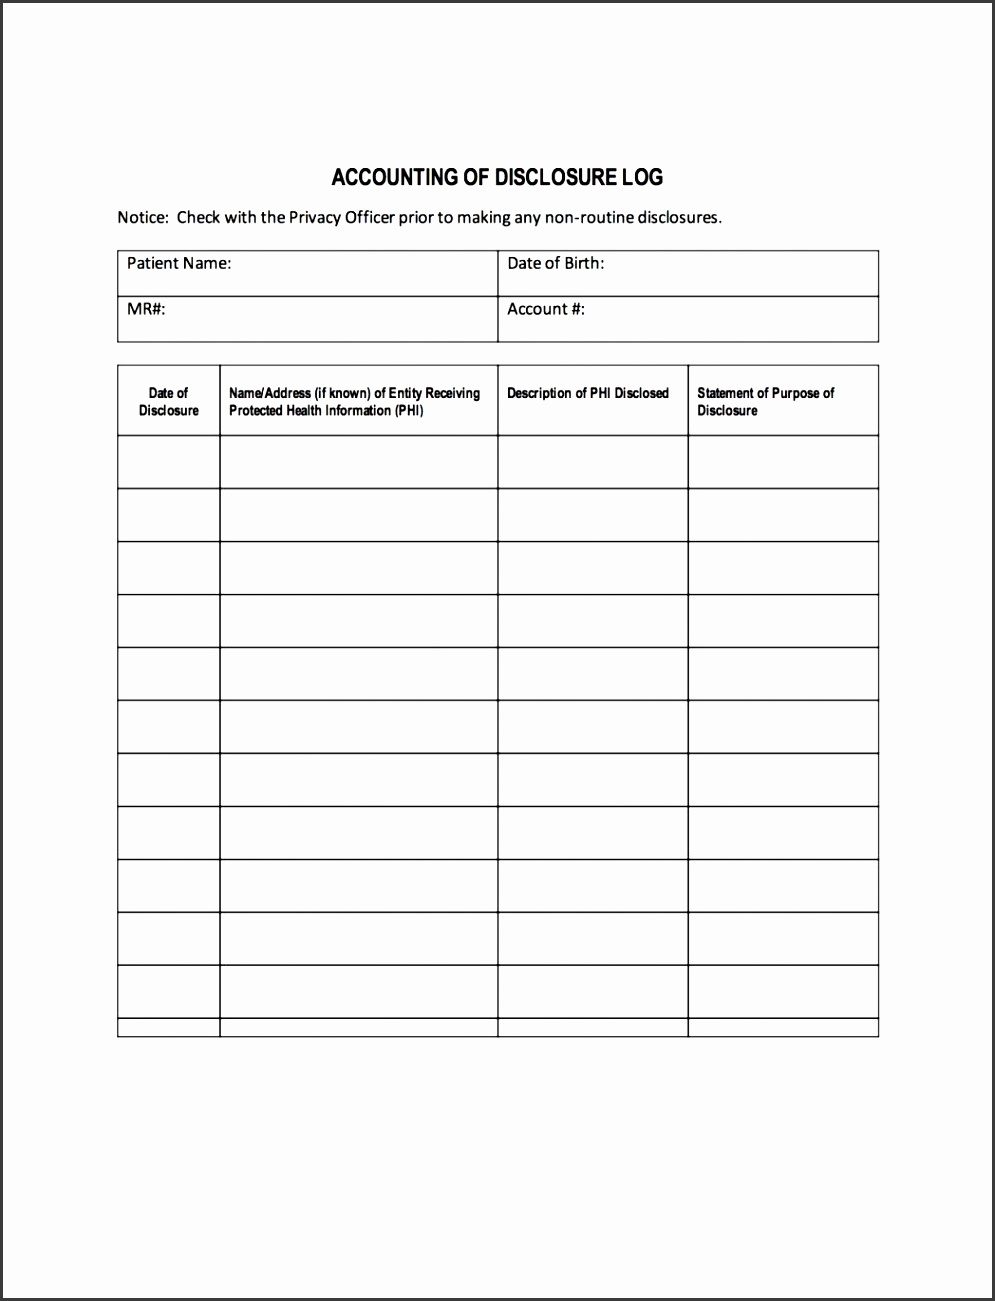 10 General Ledger Template Pdf SampleTemplatess SampleTemplatess General  Ledger Template Pdf Draaa Ideas Free Printable Bookkeeping Sheets General  Ledger ...  General Ledger Form